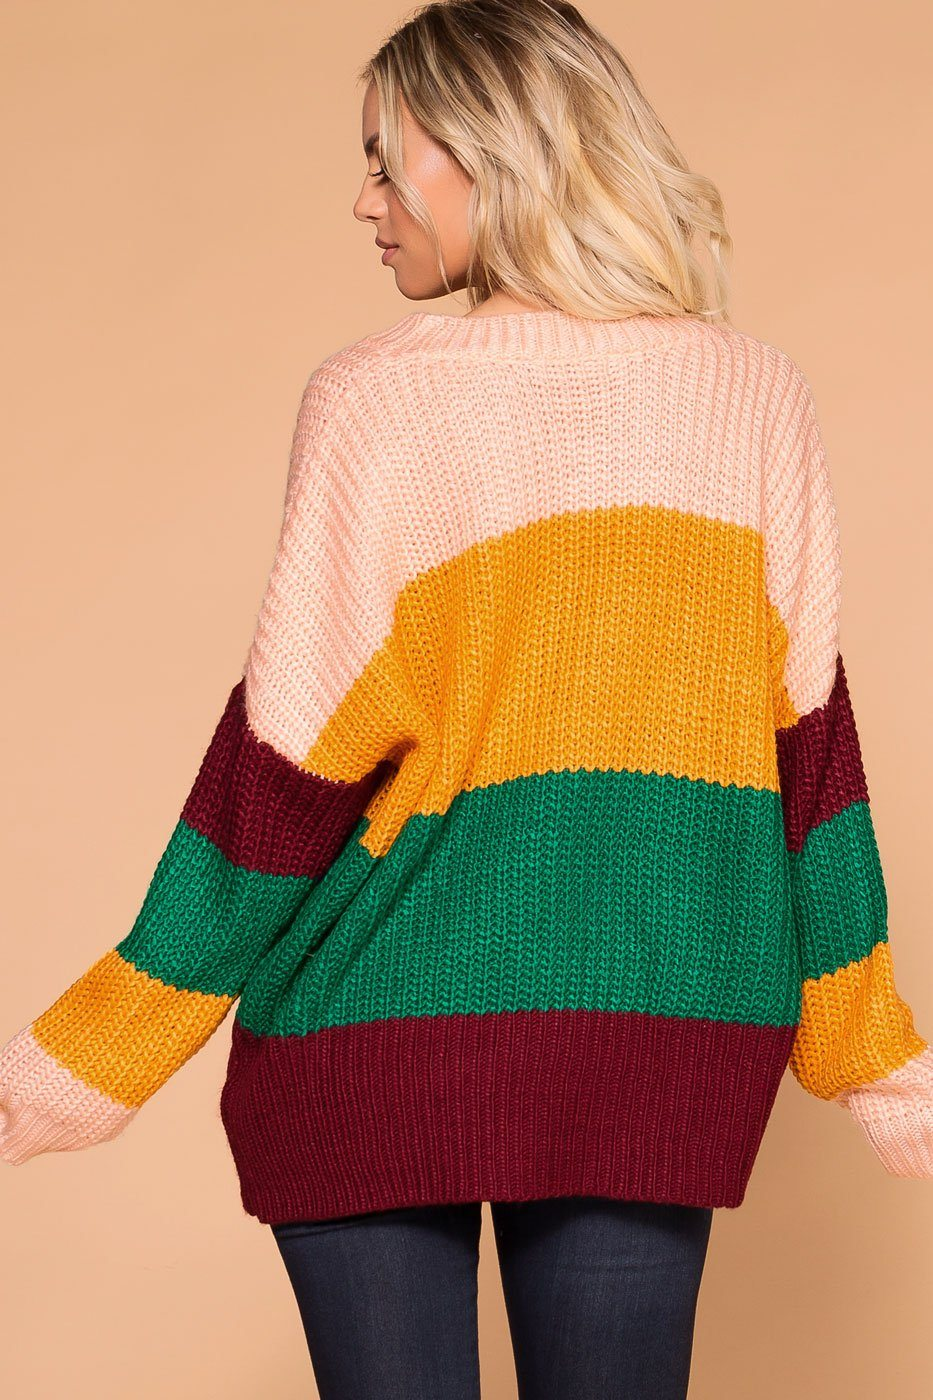 Priceless | Color Block Sweater | Knit Sweater Top | Womens